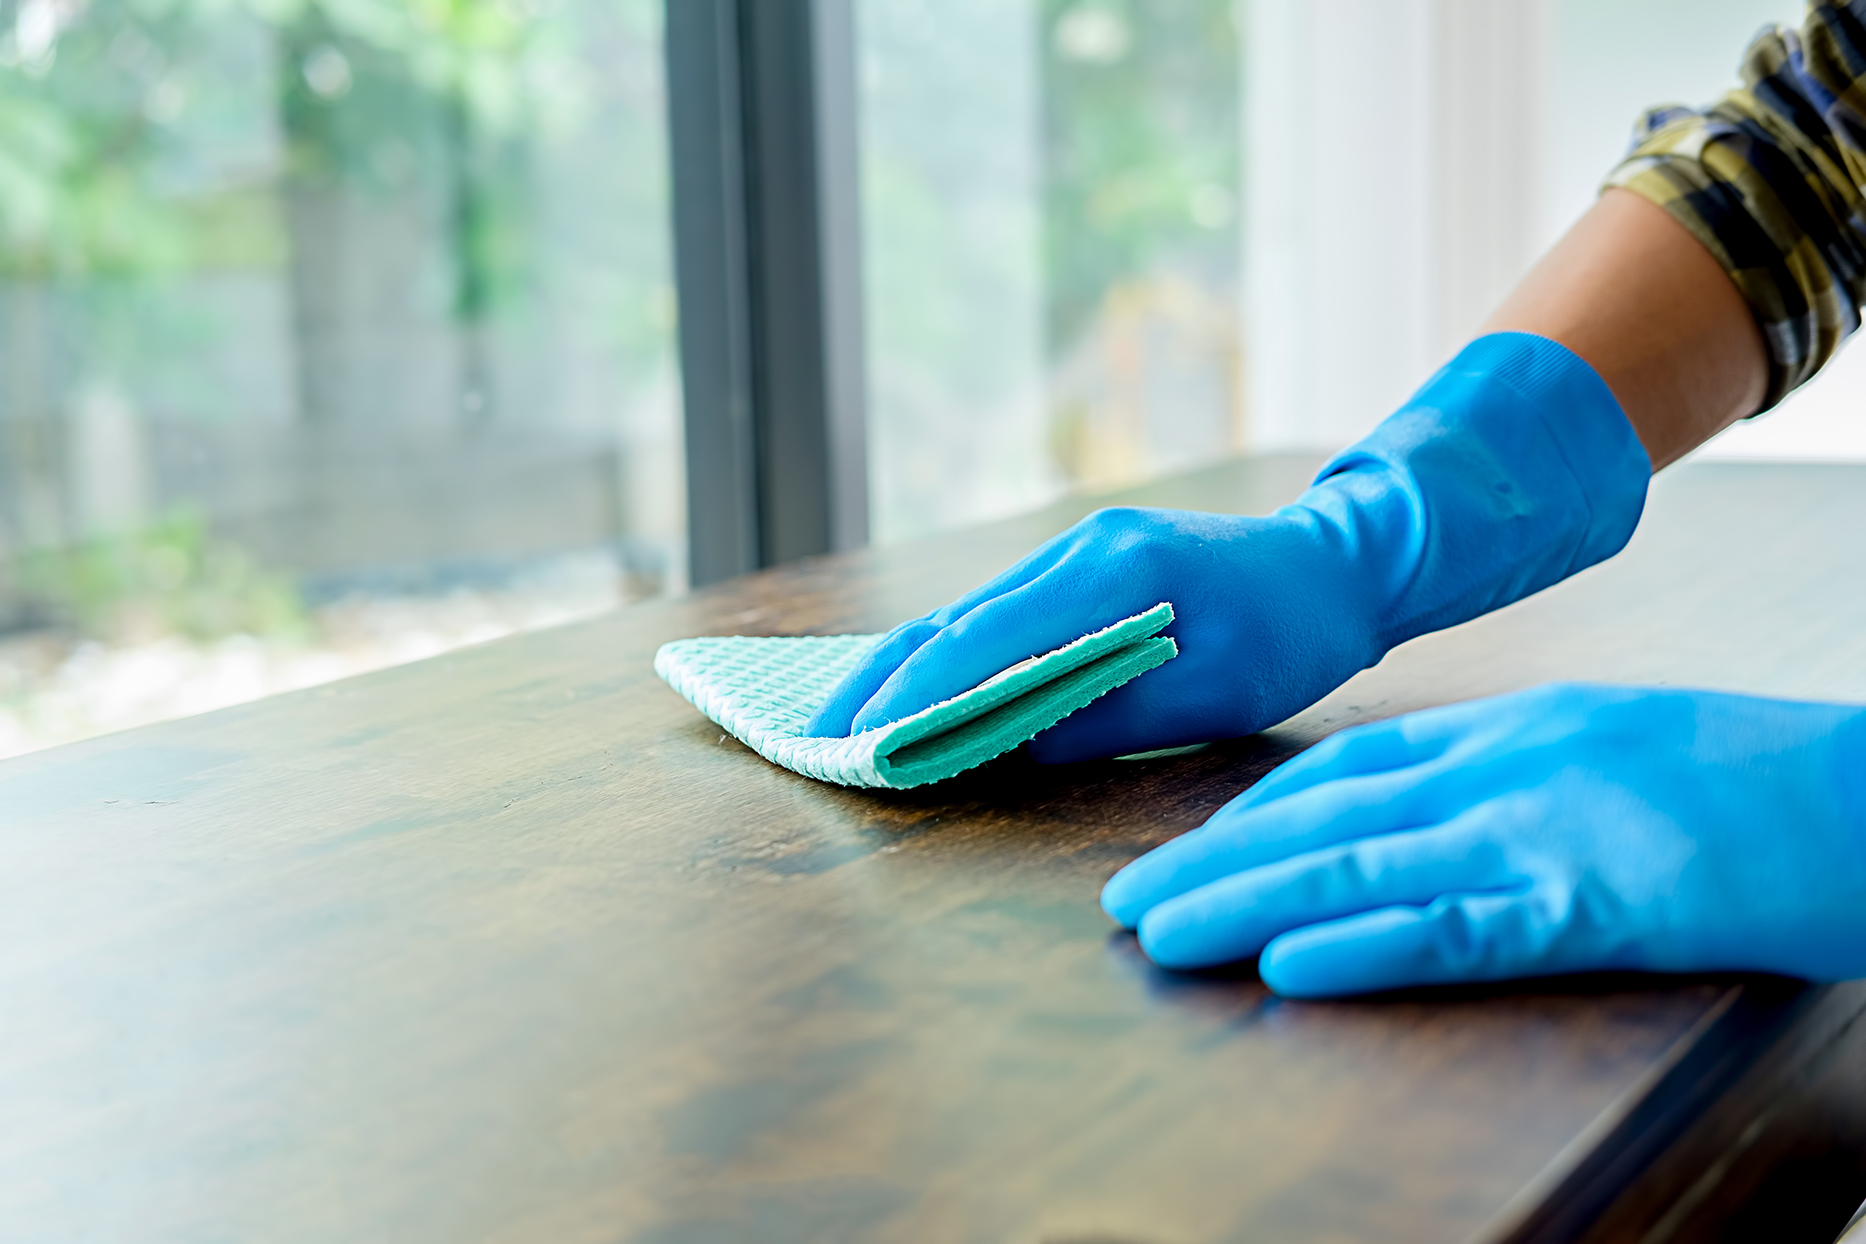 Person wearing blue gloves dusting wooden table